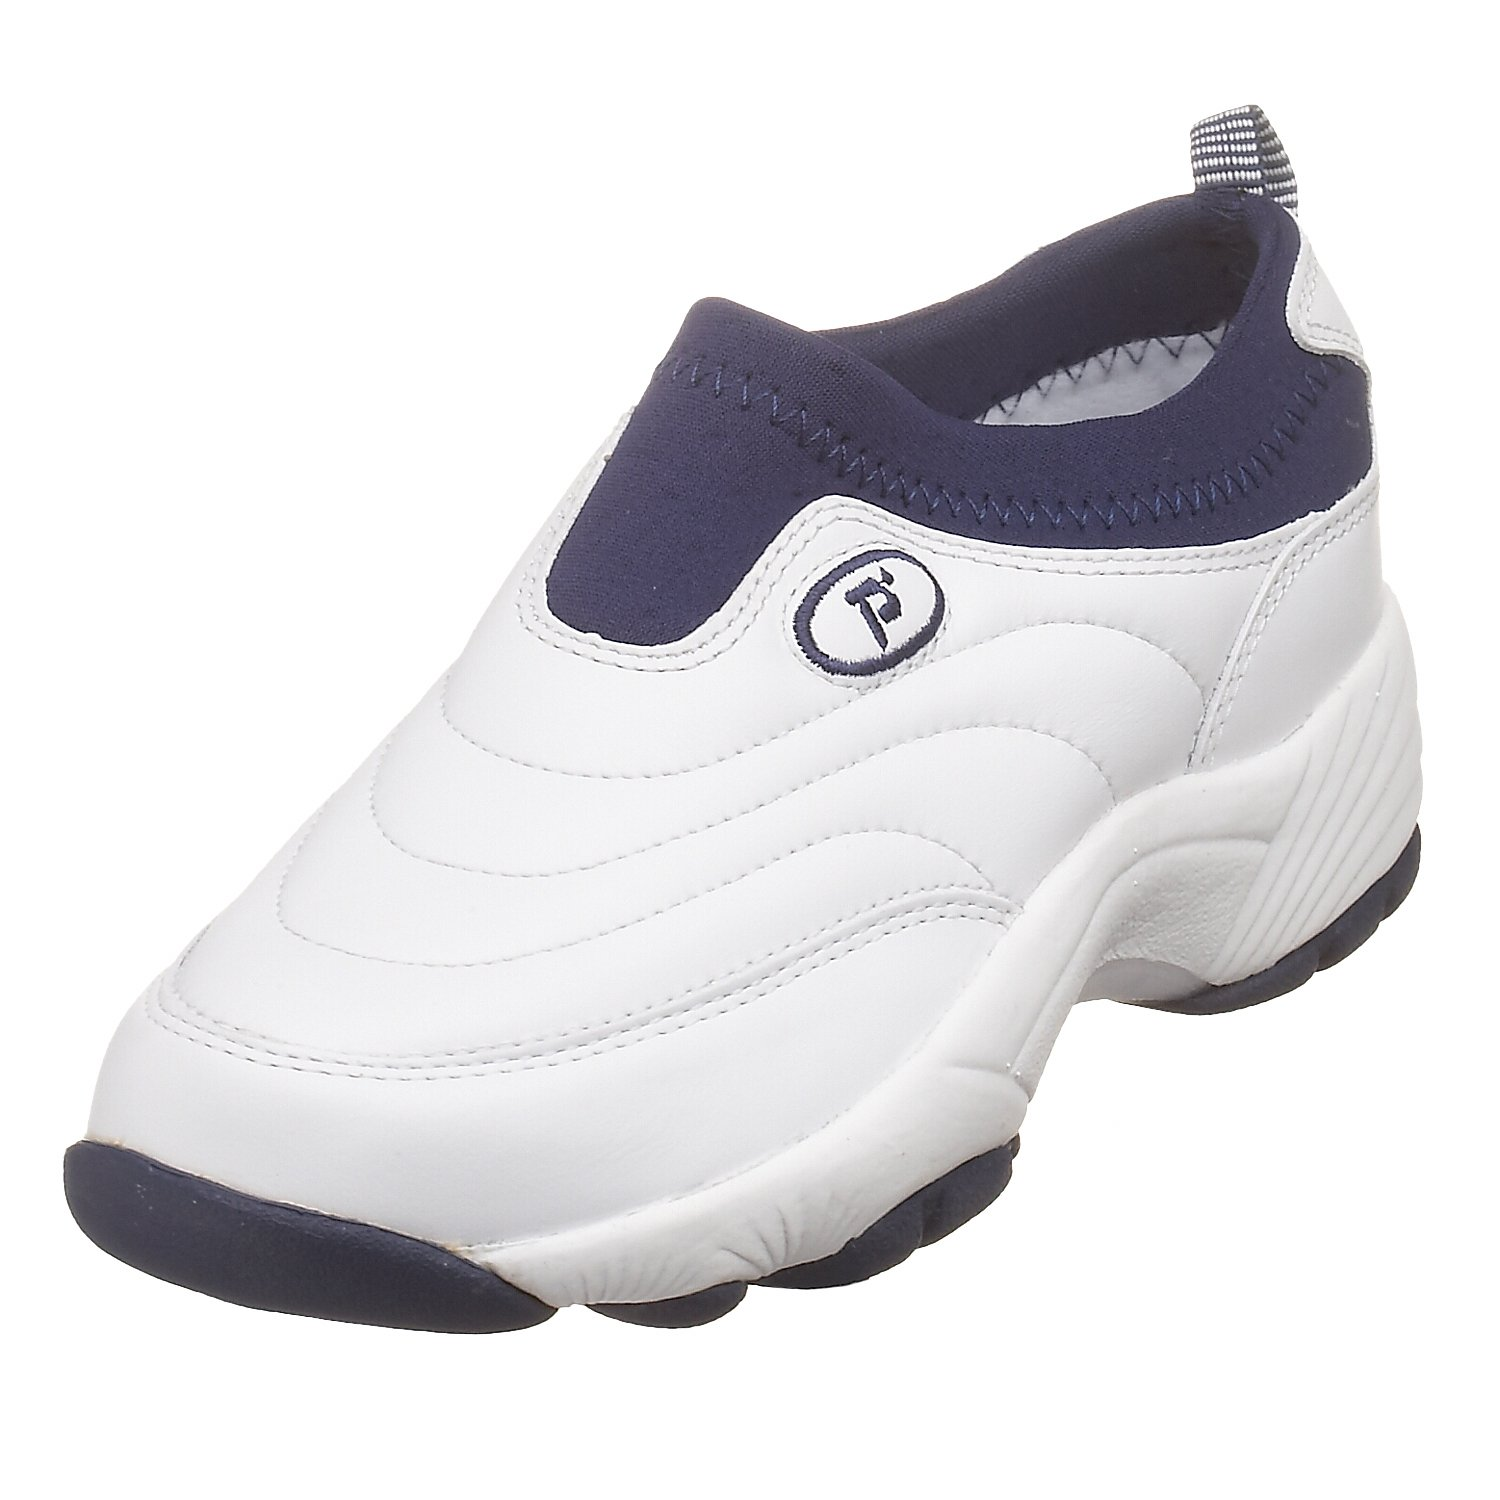 Propet Women's W3851 Wash & Wear Slip-On B000BO12RU 9 XX (US Women's 9 EEEE)|White/Navy